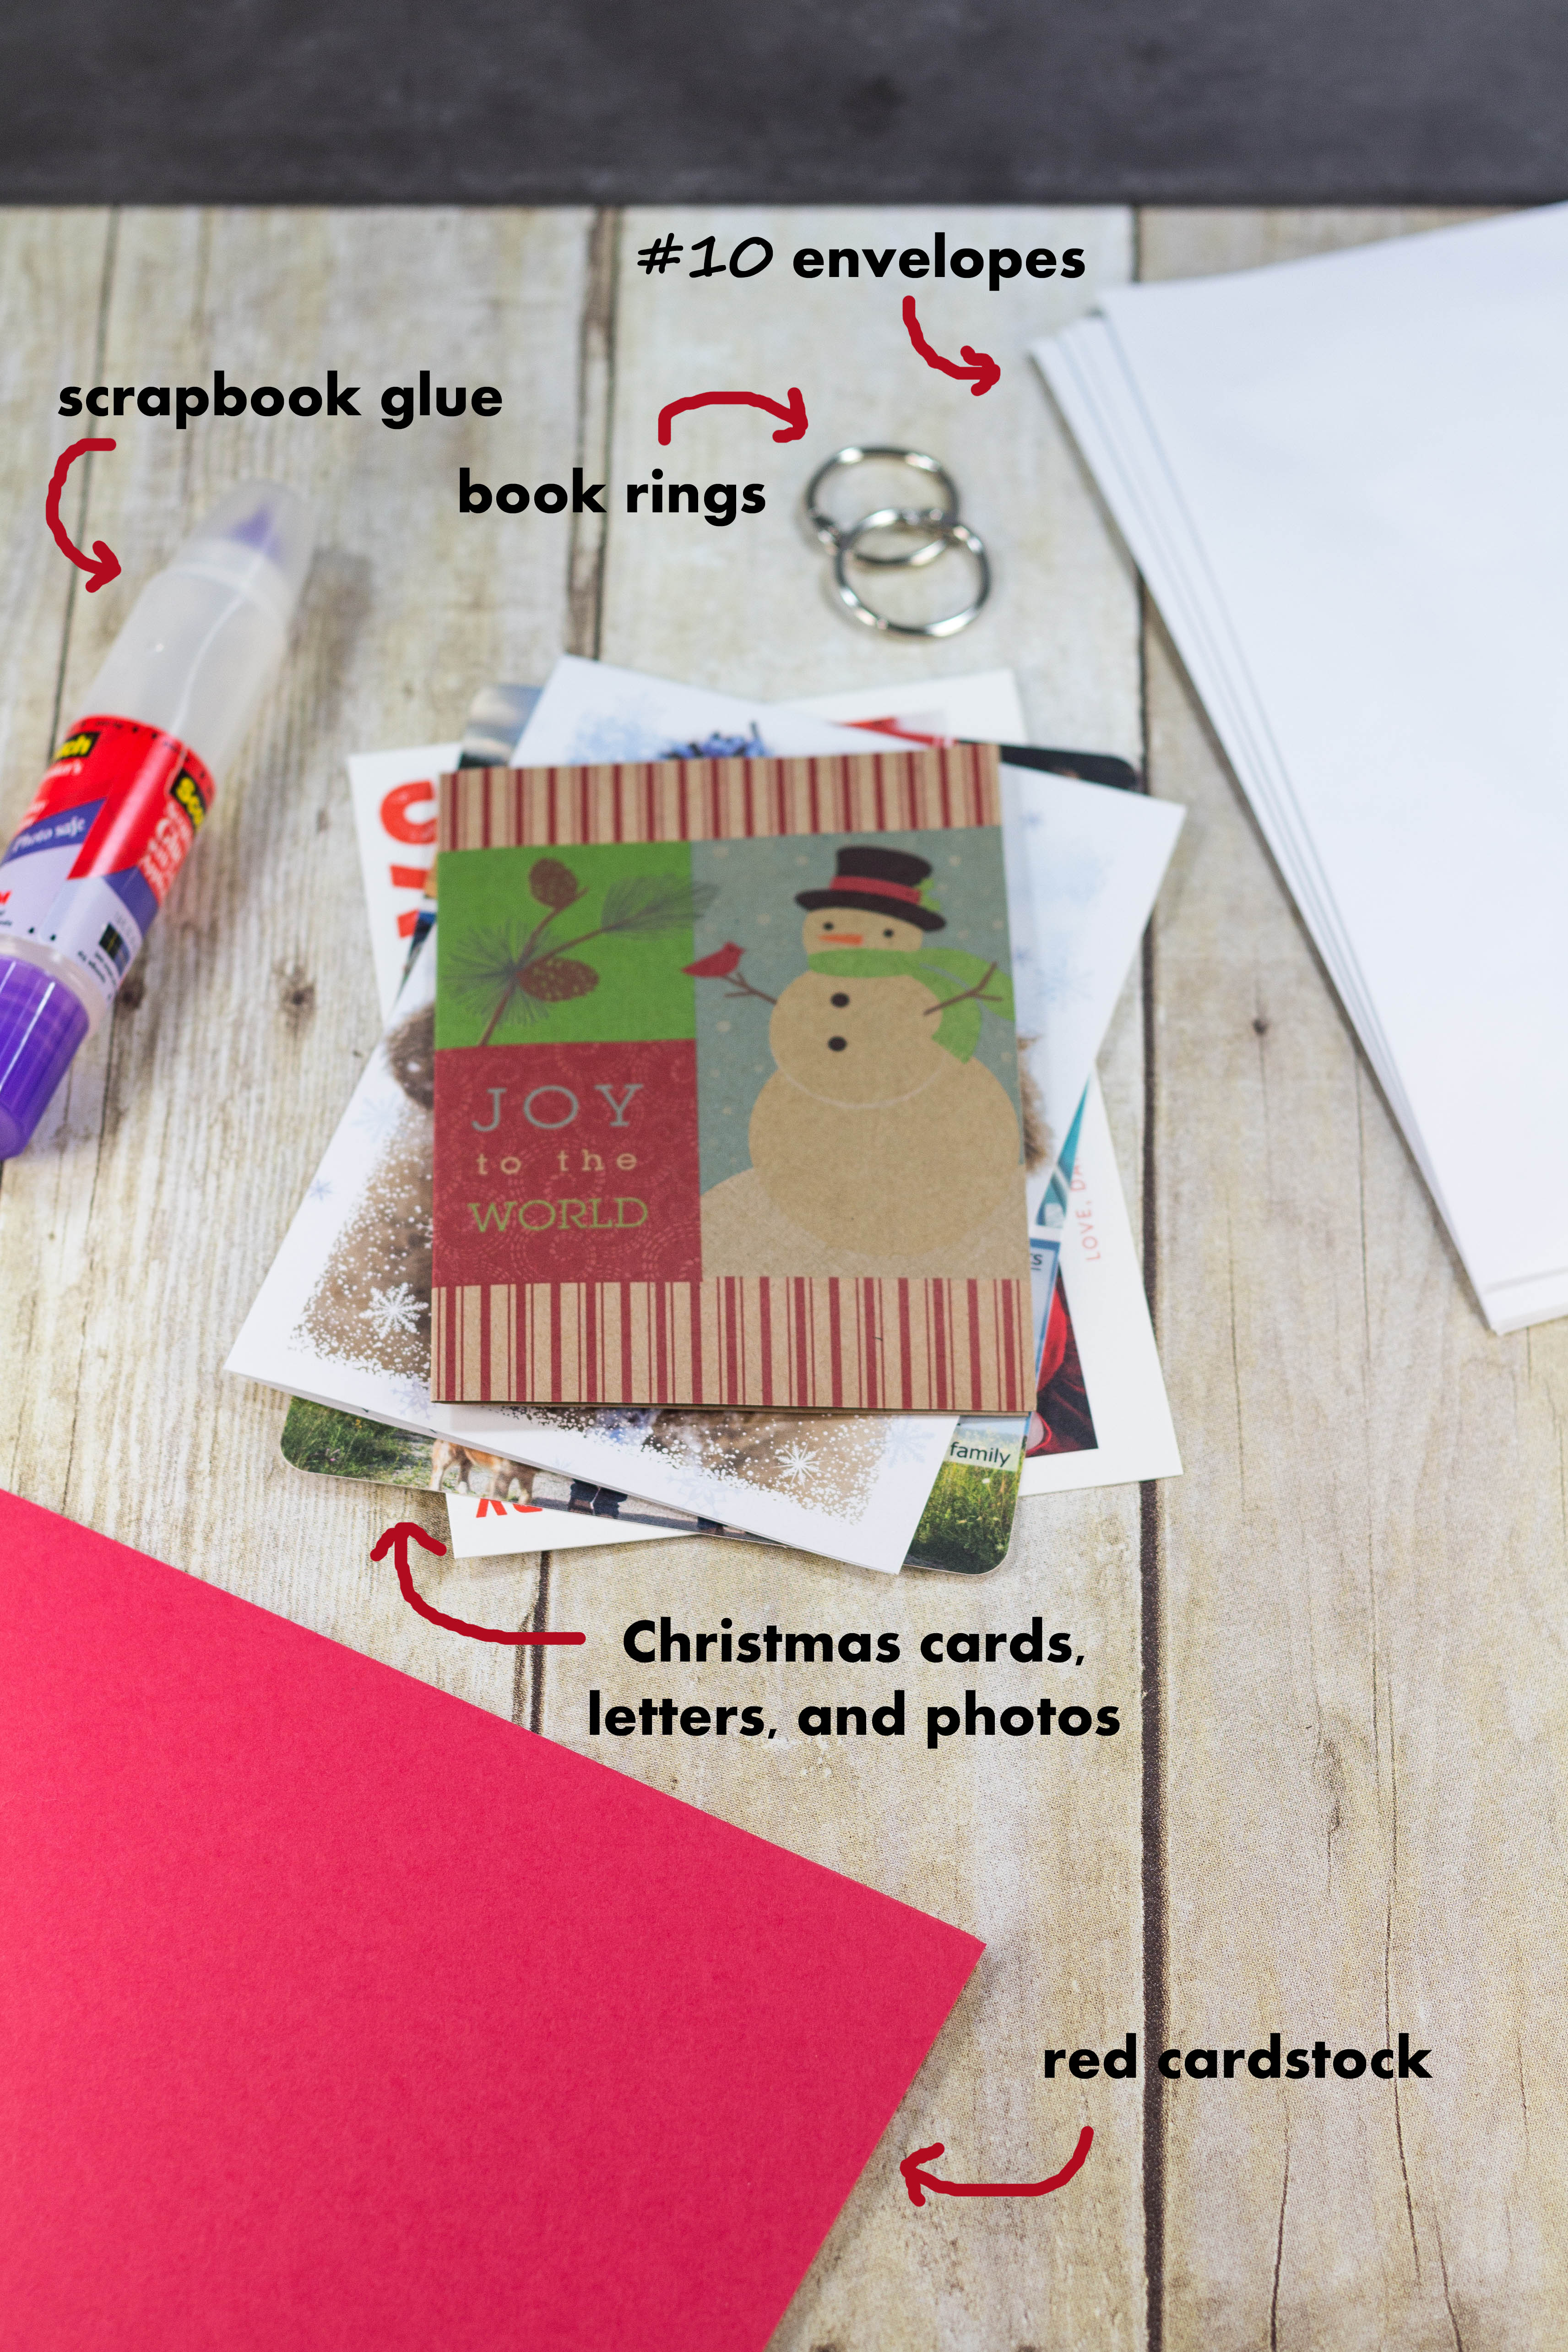 45 stylish clever greeting cards christmas greetings wording upcycled christmas card books tutorial rose clearfield diy upcycled christmas card books supplies flatlay upcycled kristyandbryce Image collections